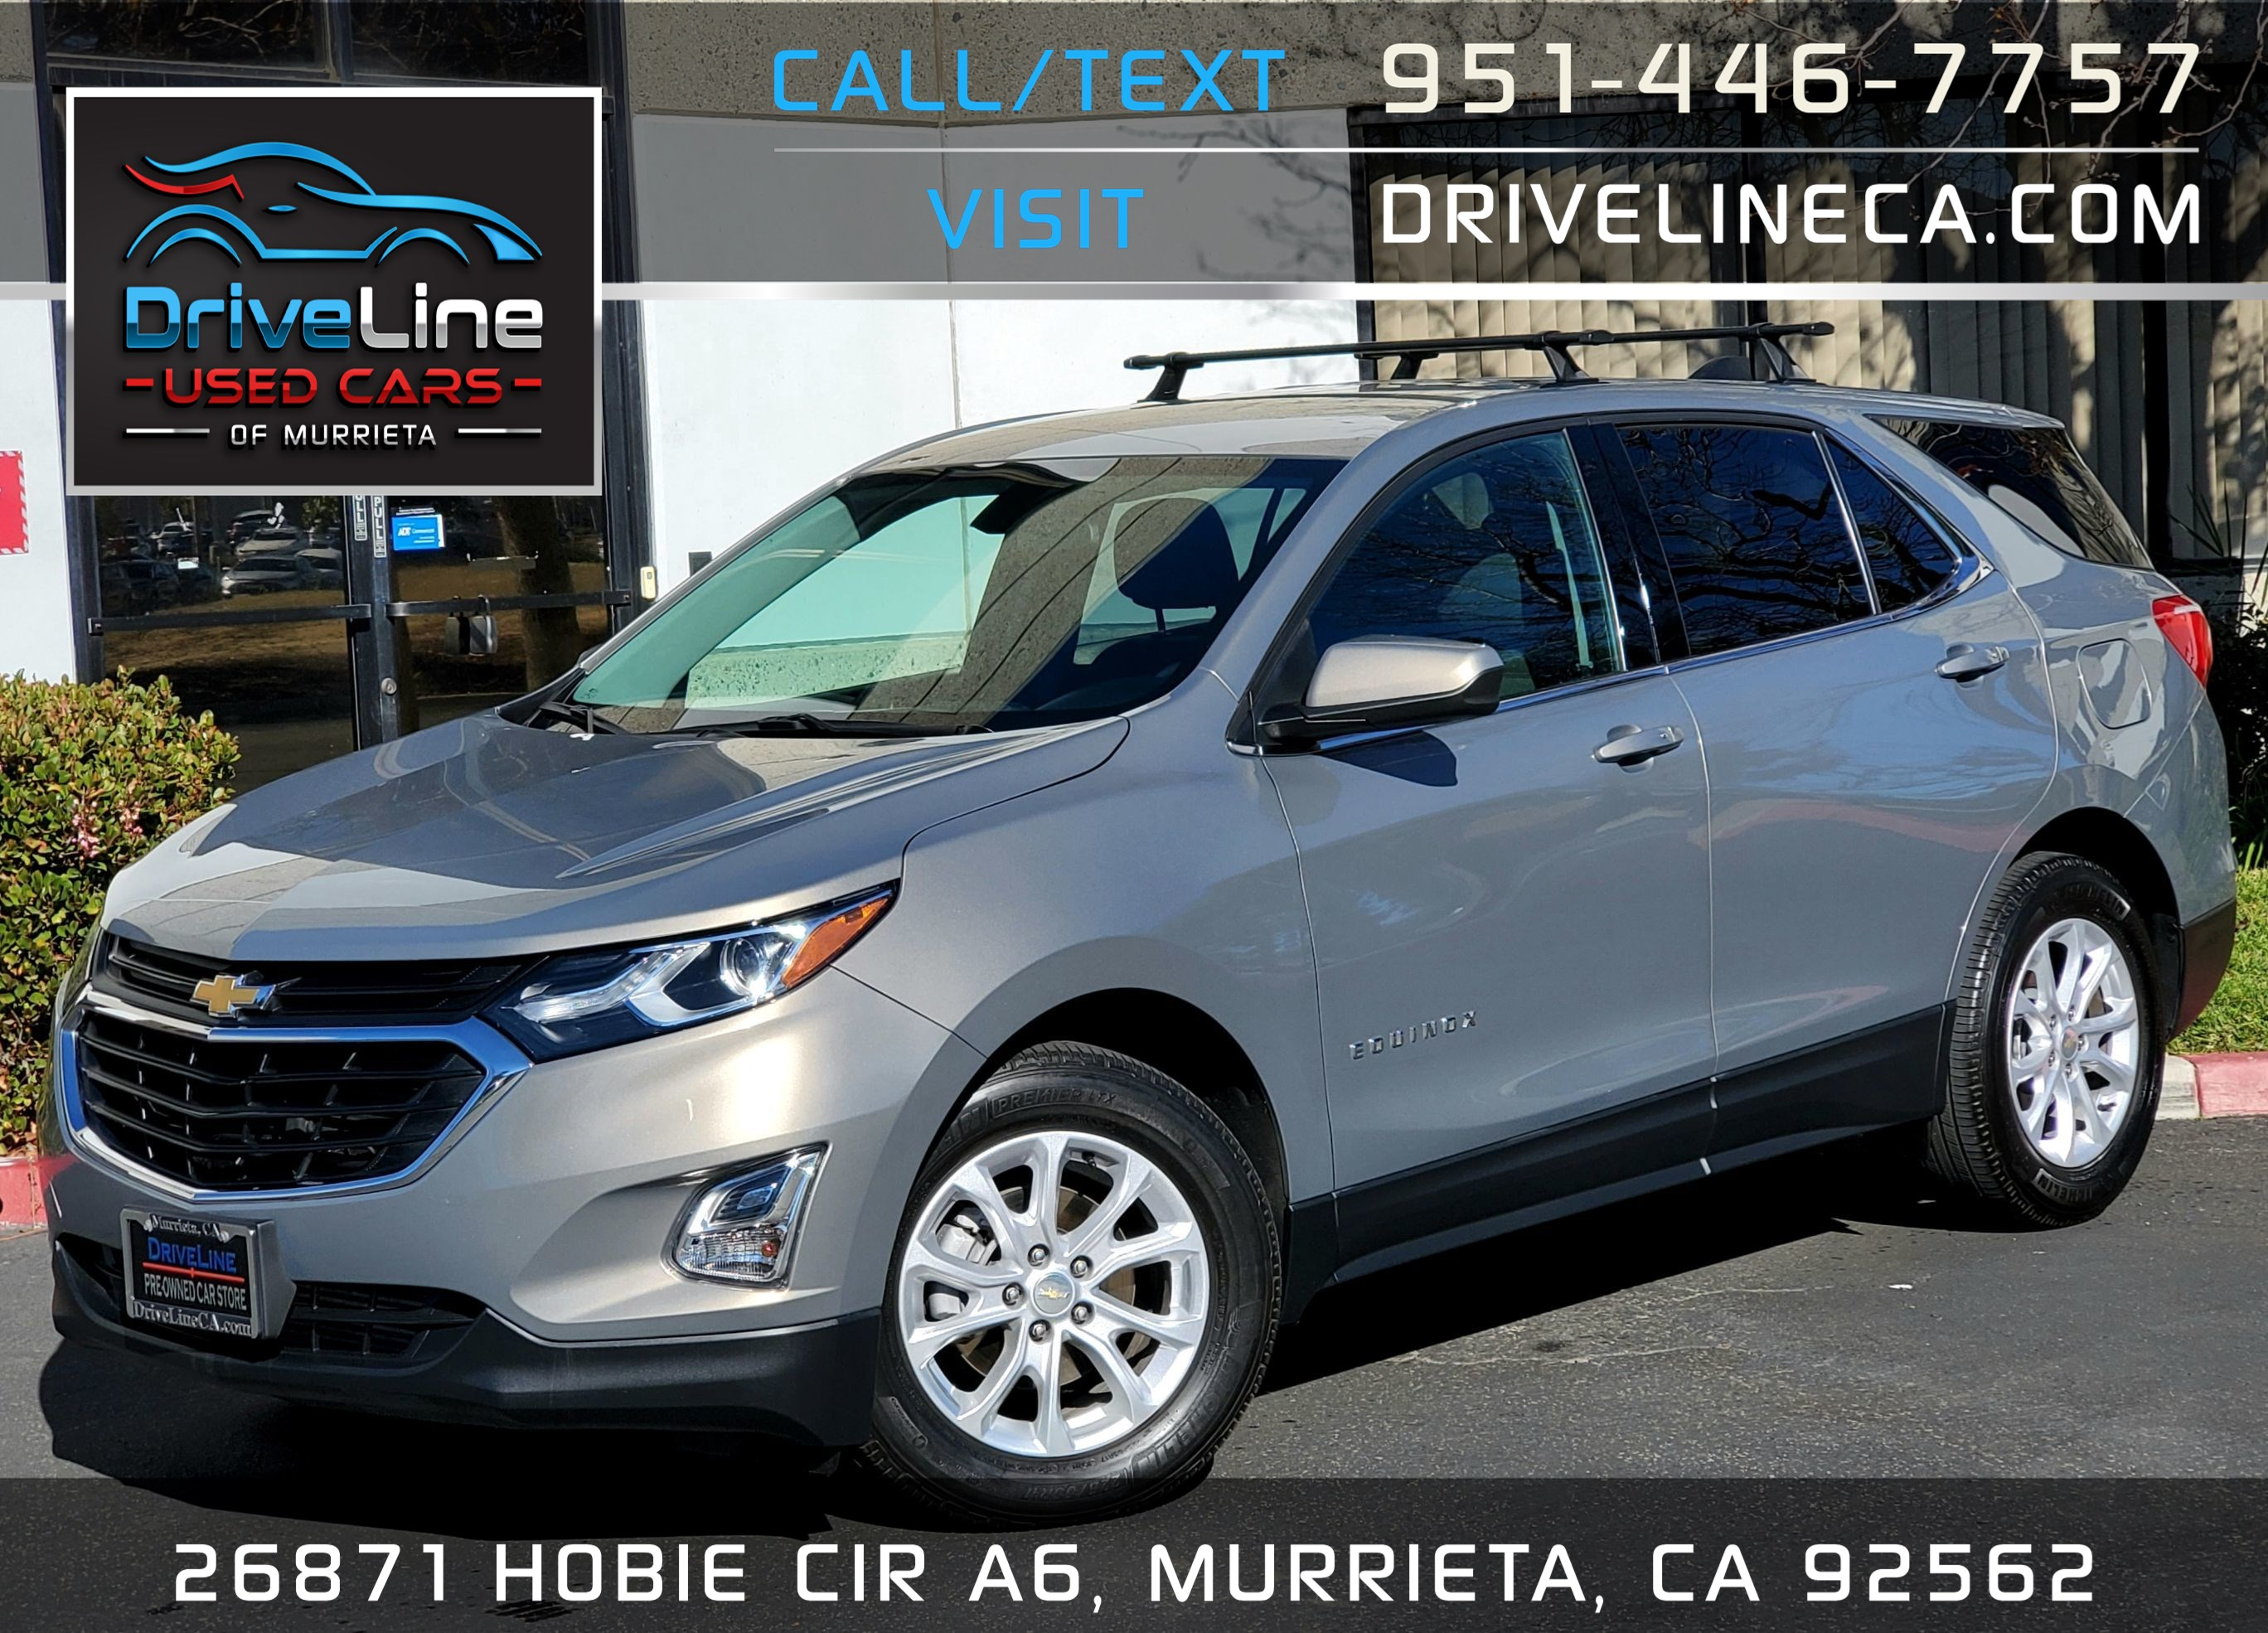 2019 Chevrolet Equinox LT - Rear View Camera - $28,675 MSRP